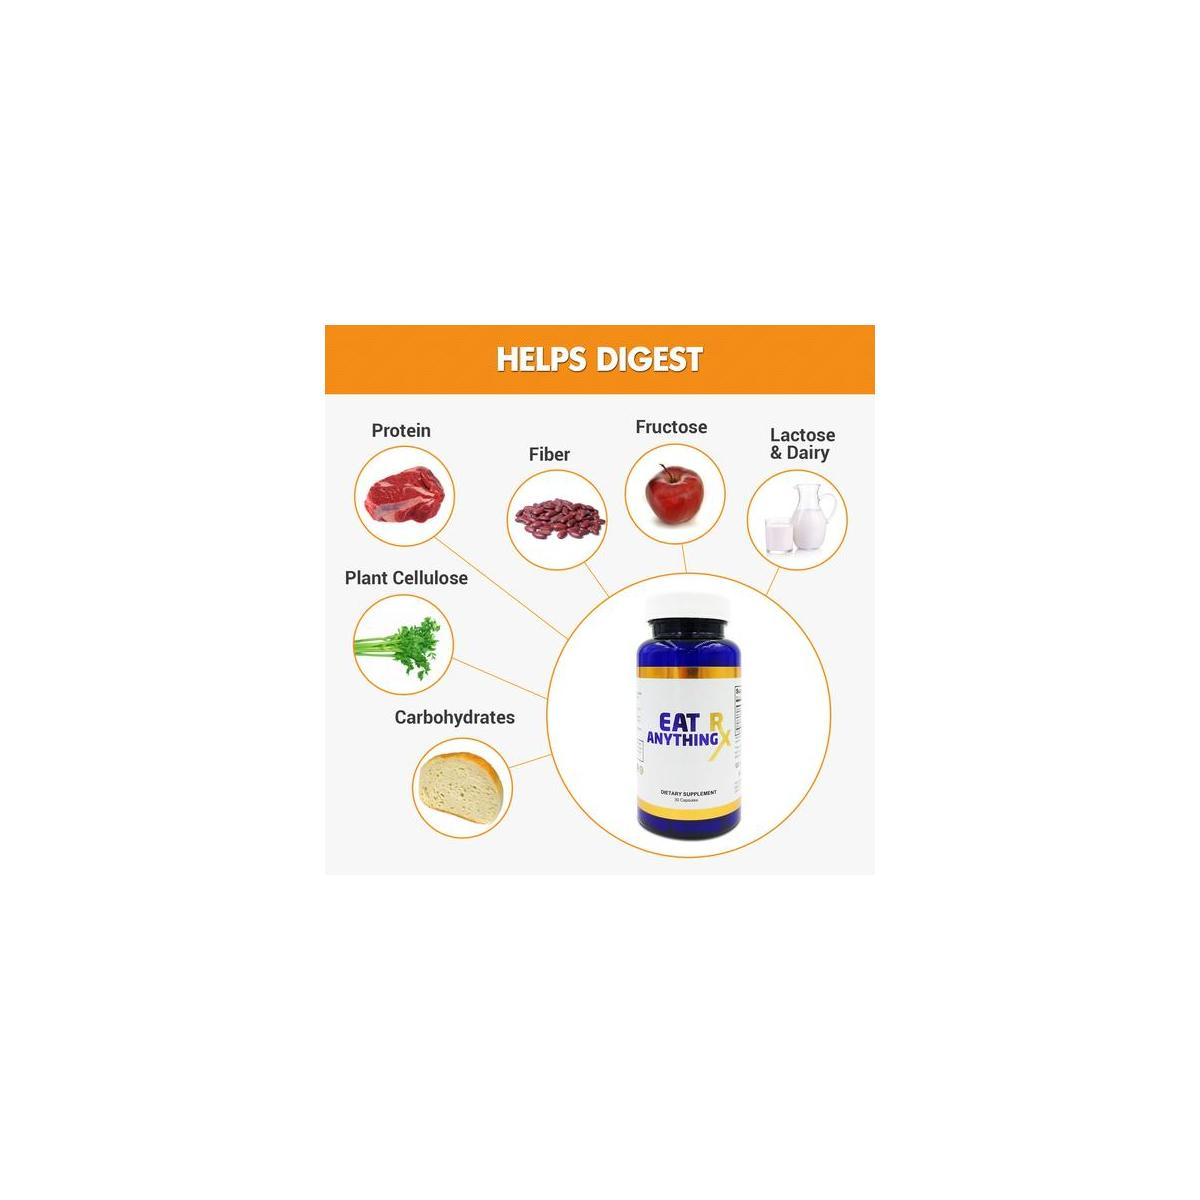 Eat Anything Rx - Comprehensive Digestive Enzyme - Fructose, Lactose, Fats, Carbs, Proteins & More - 30 count bottle